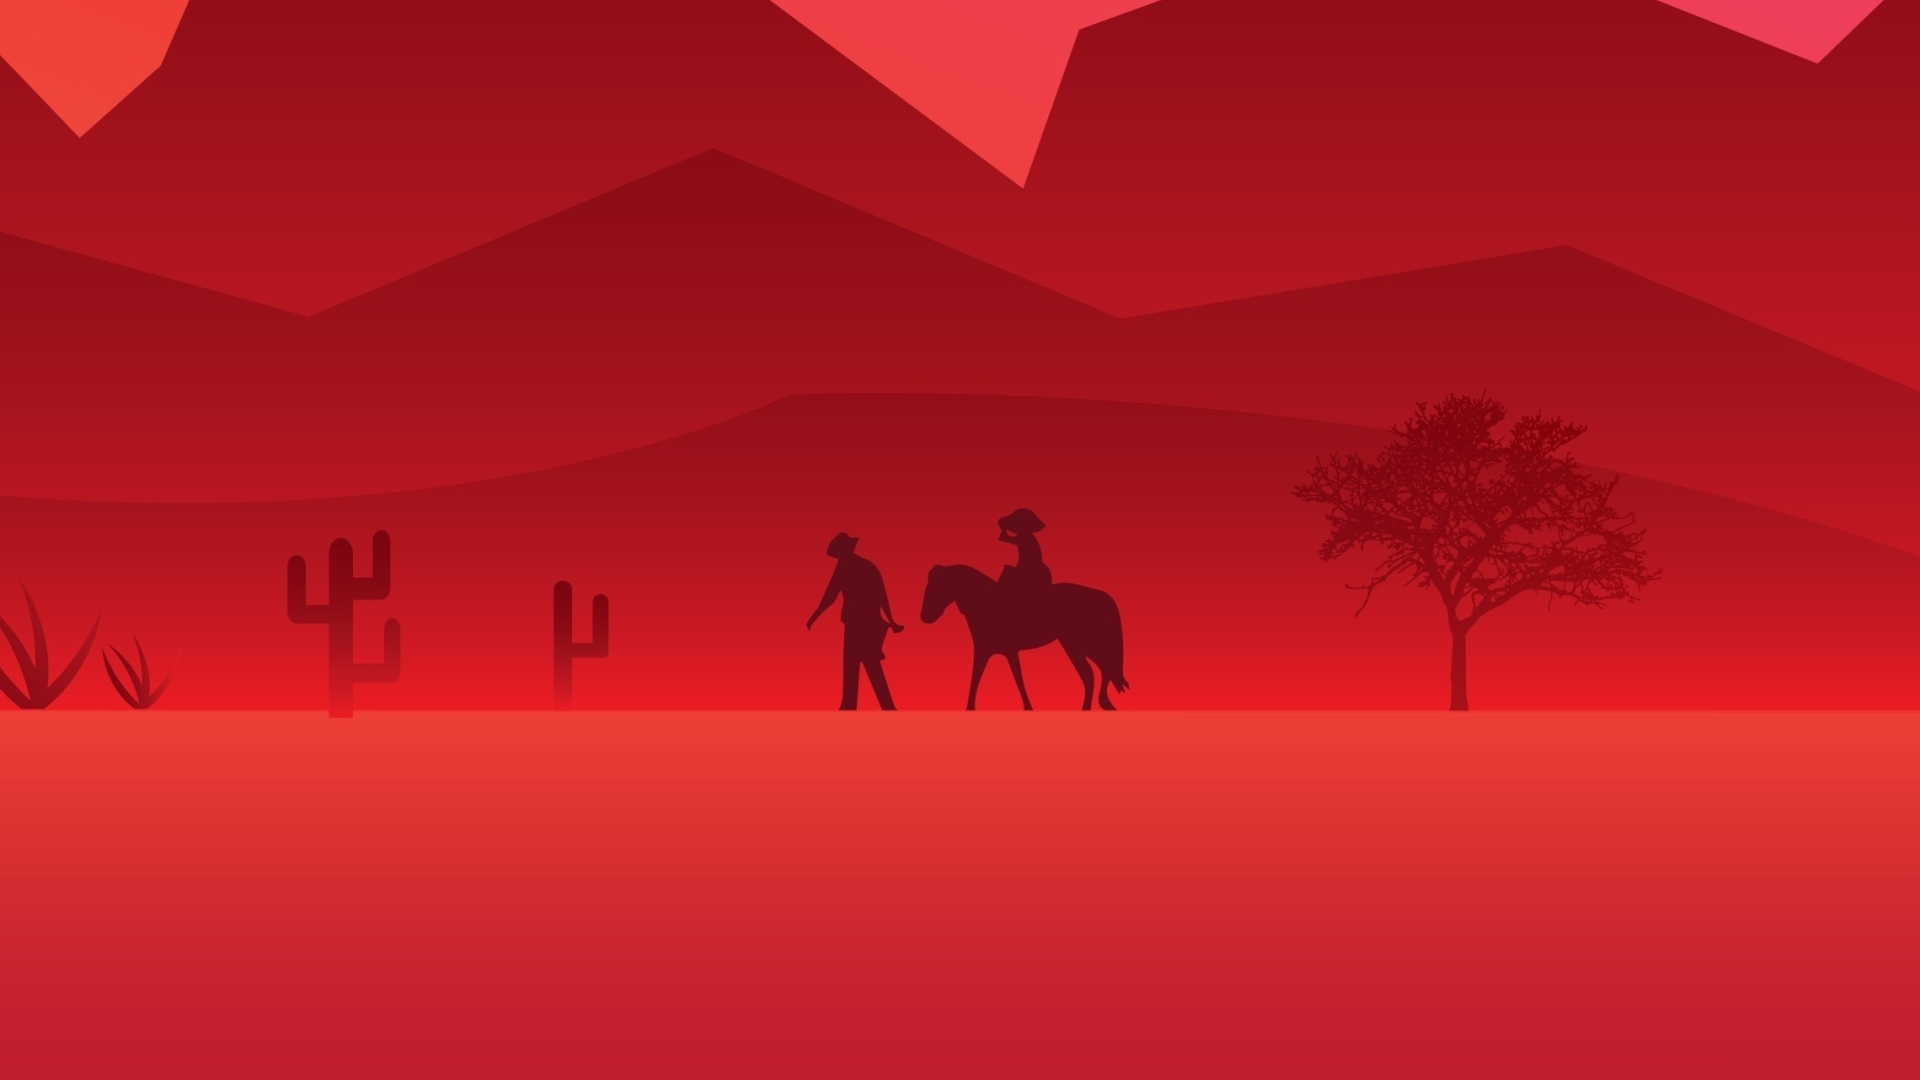 1920x1080 Red Dead Redemption 2 Minimal Game 19 1080p Laptop Full